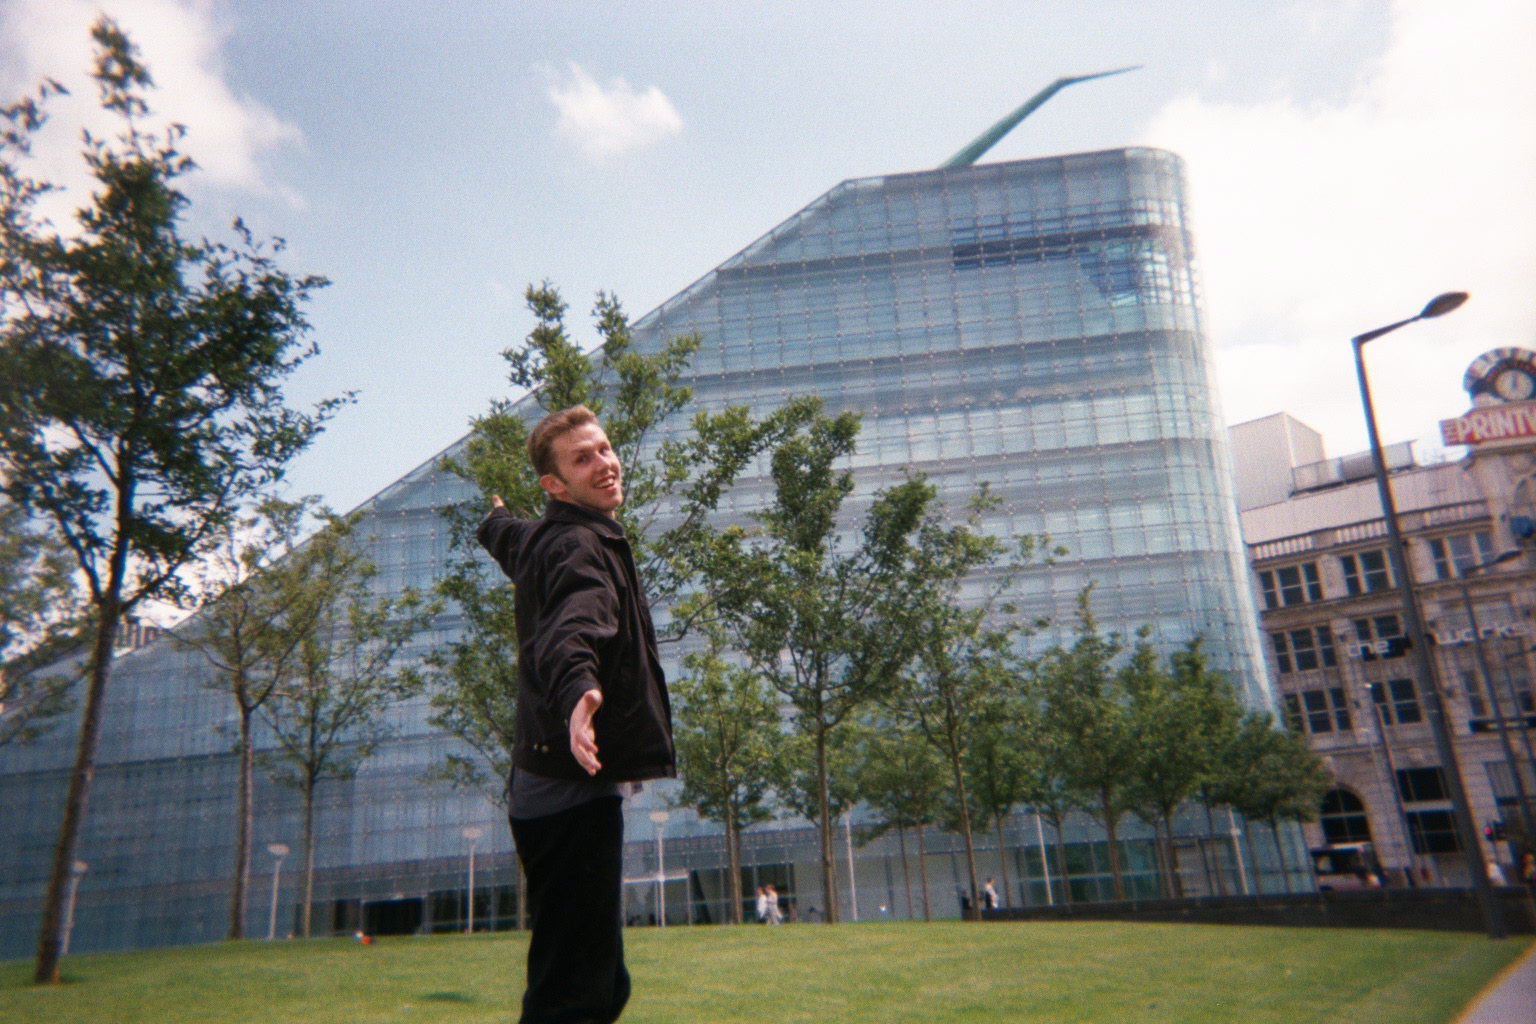 Christian in Cathedral Gardens, Manchester